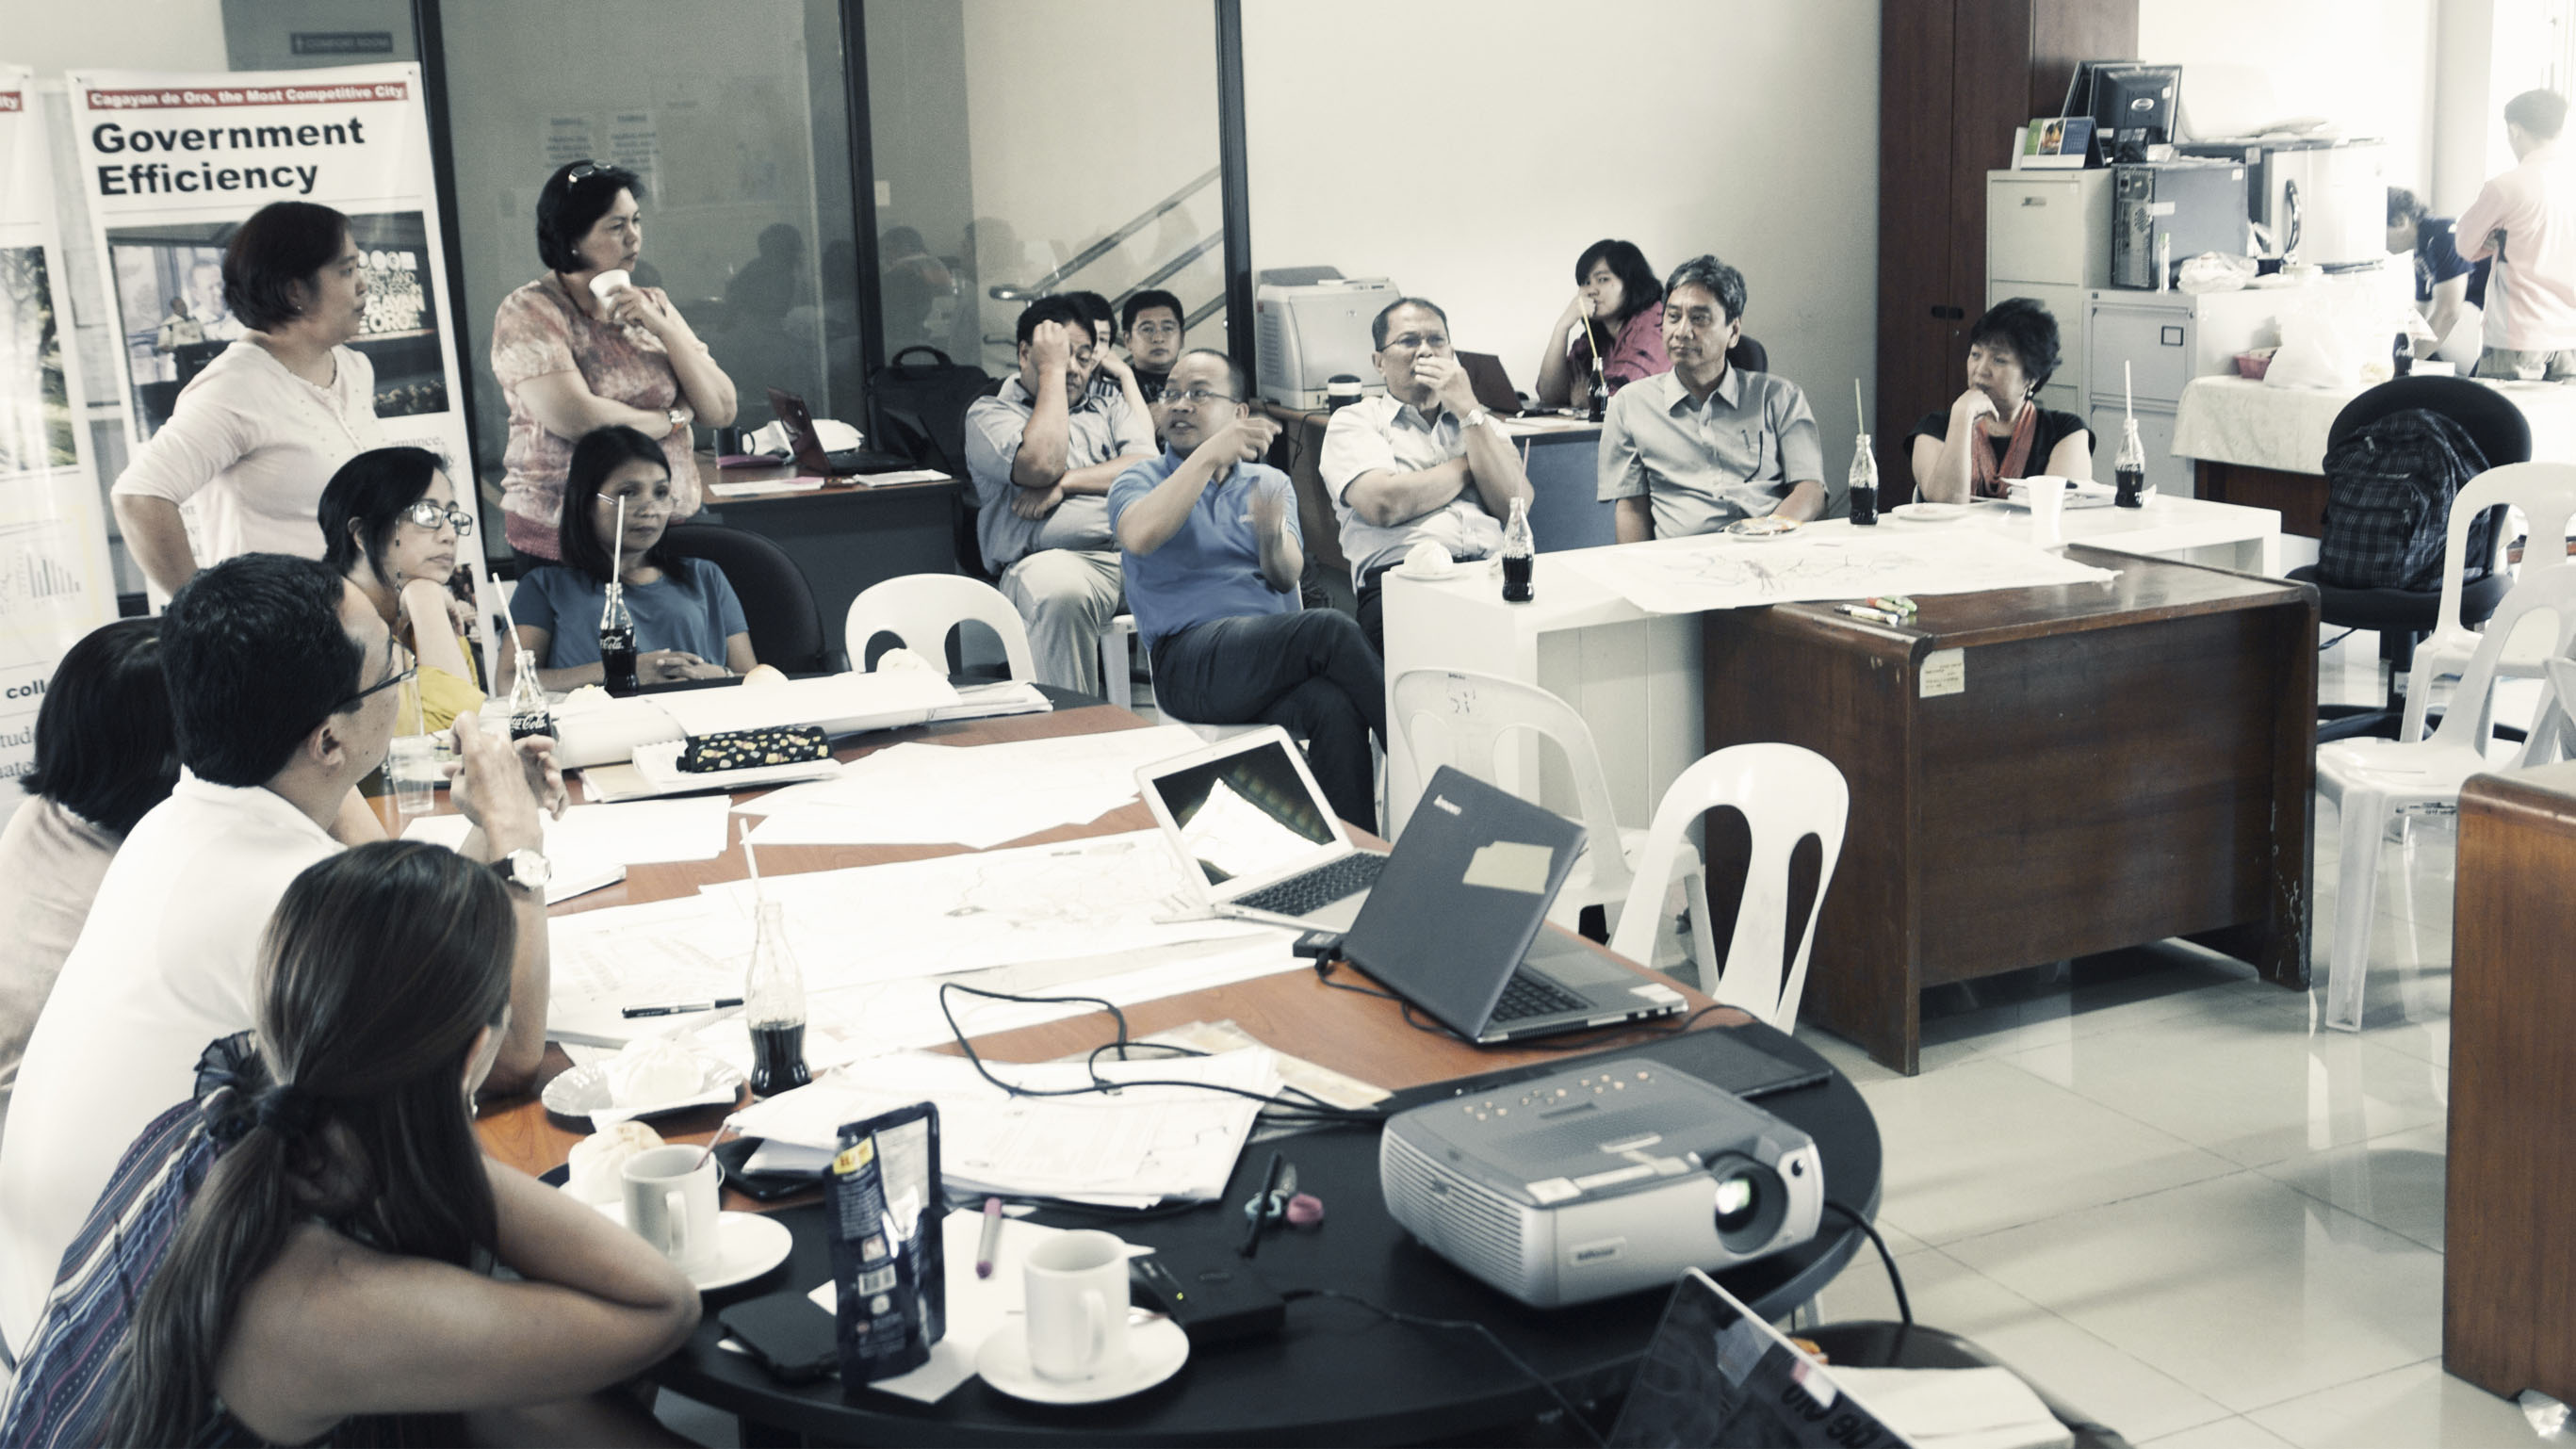 Achieving Sustainable Urban Development (ASUD) in the Philippines